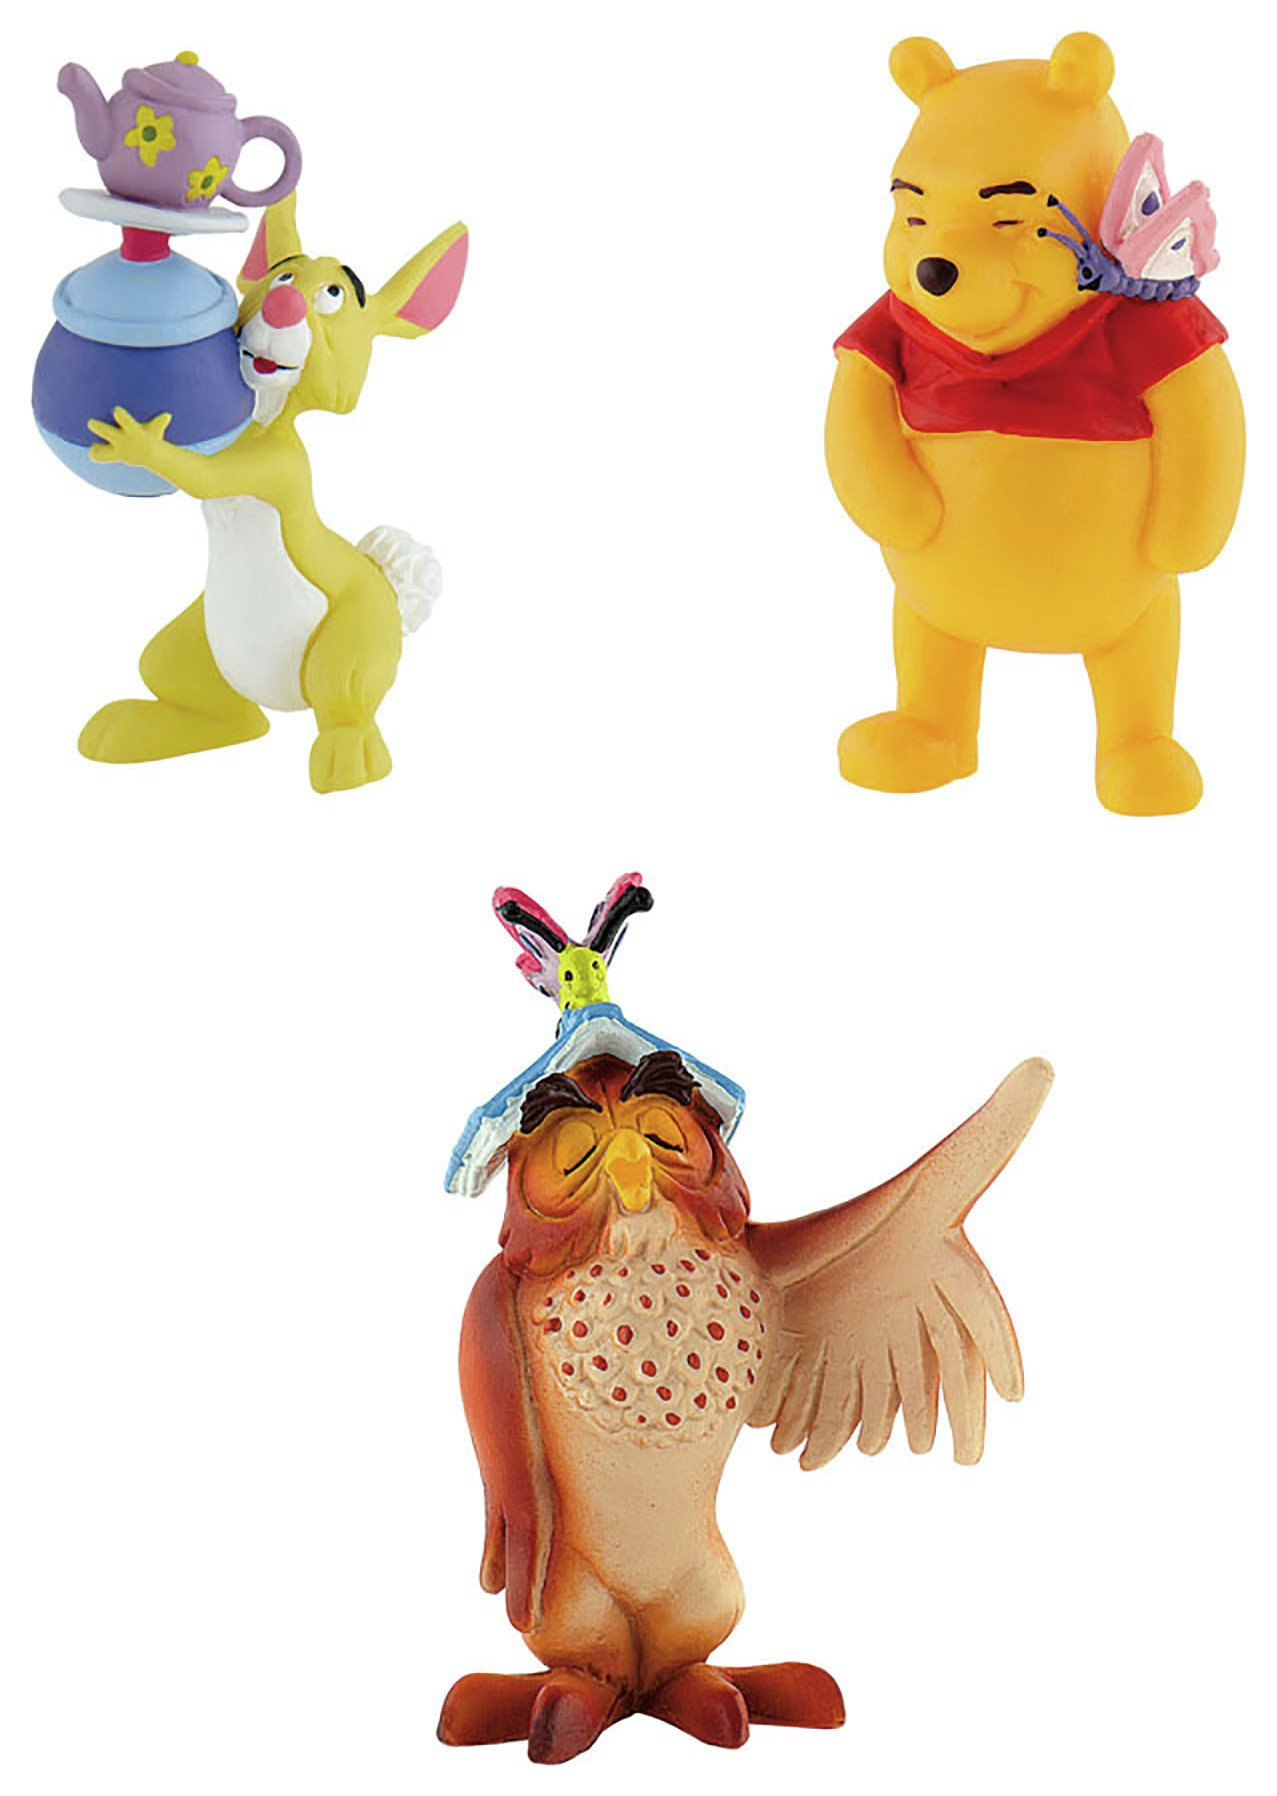 Image of Winnie the Pooh - Characters - Pack of 3.